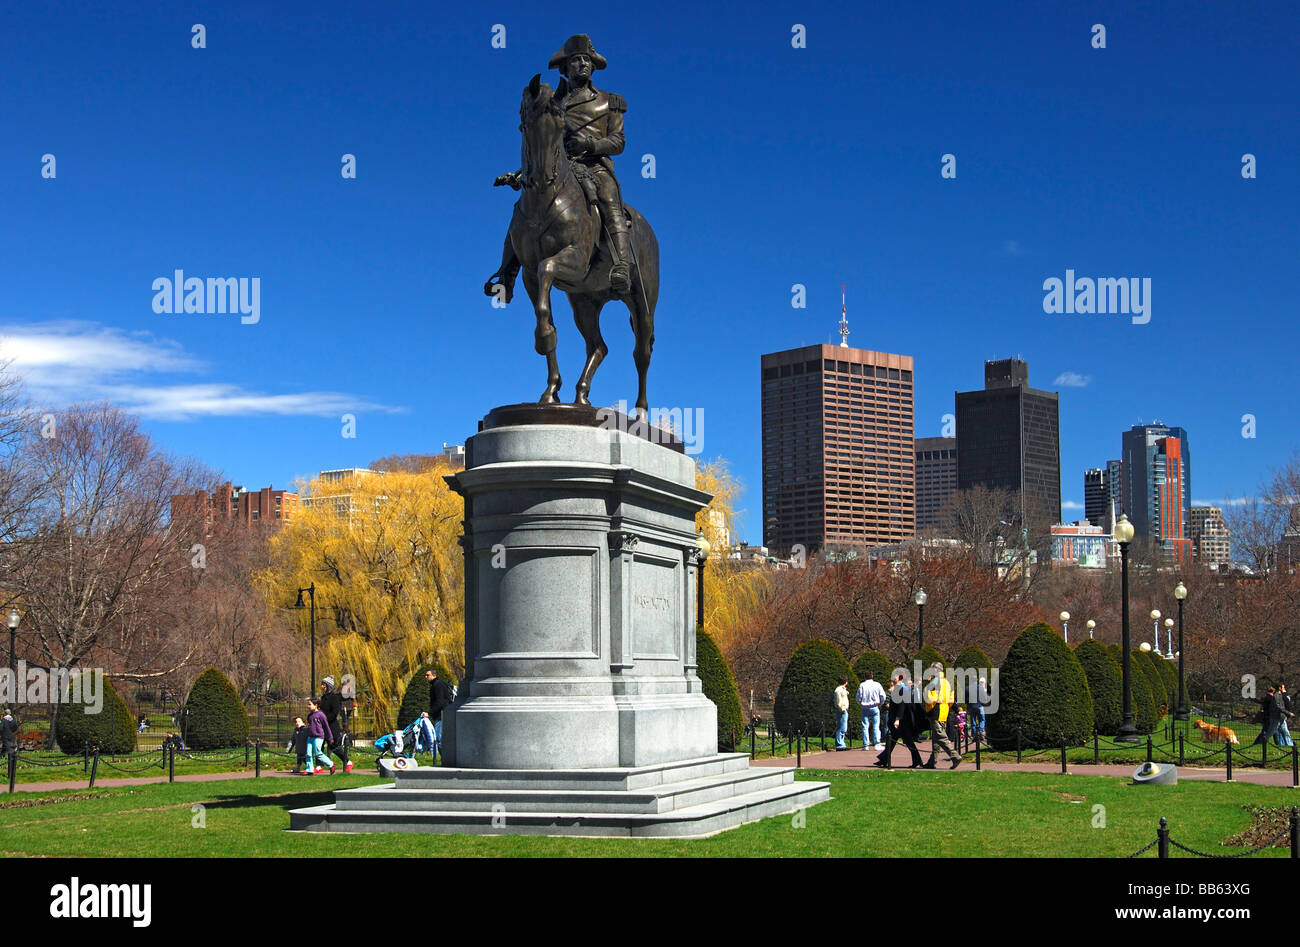 Equestrian statue of George Washington in the Boston Public Garden with the skyline of the financial district of - Stock Image